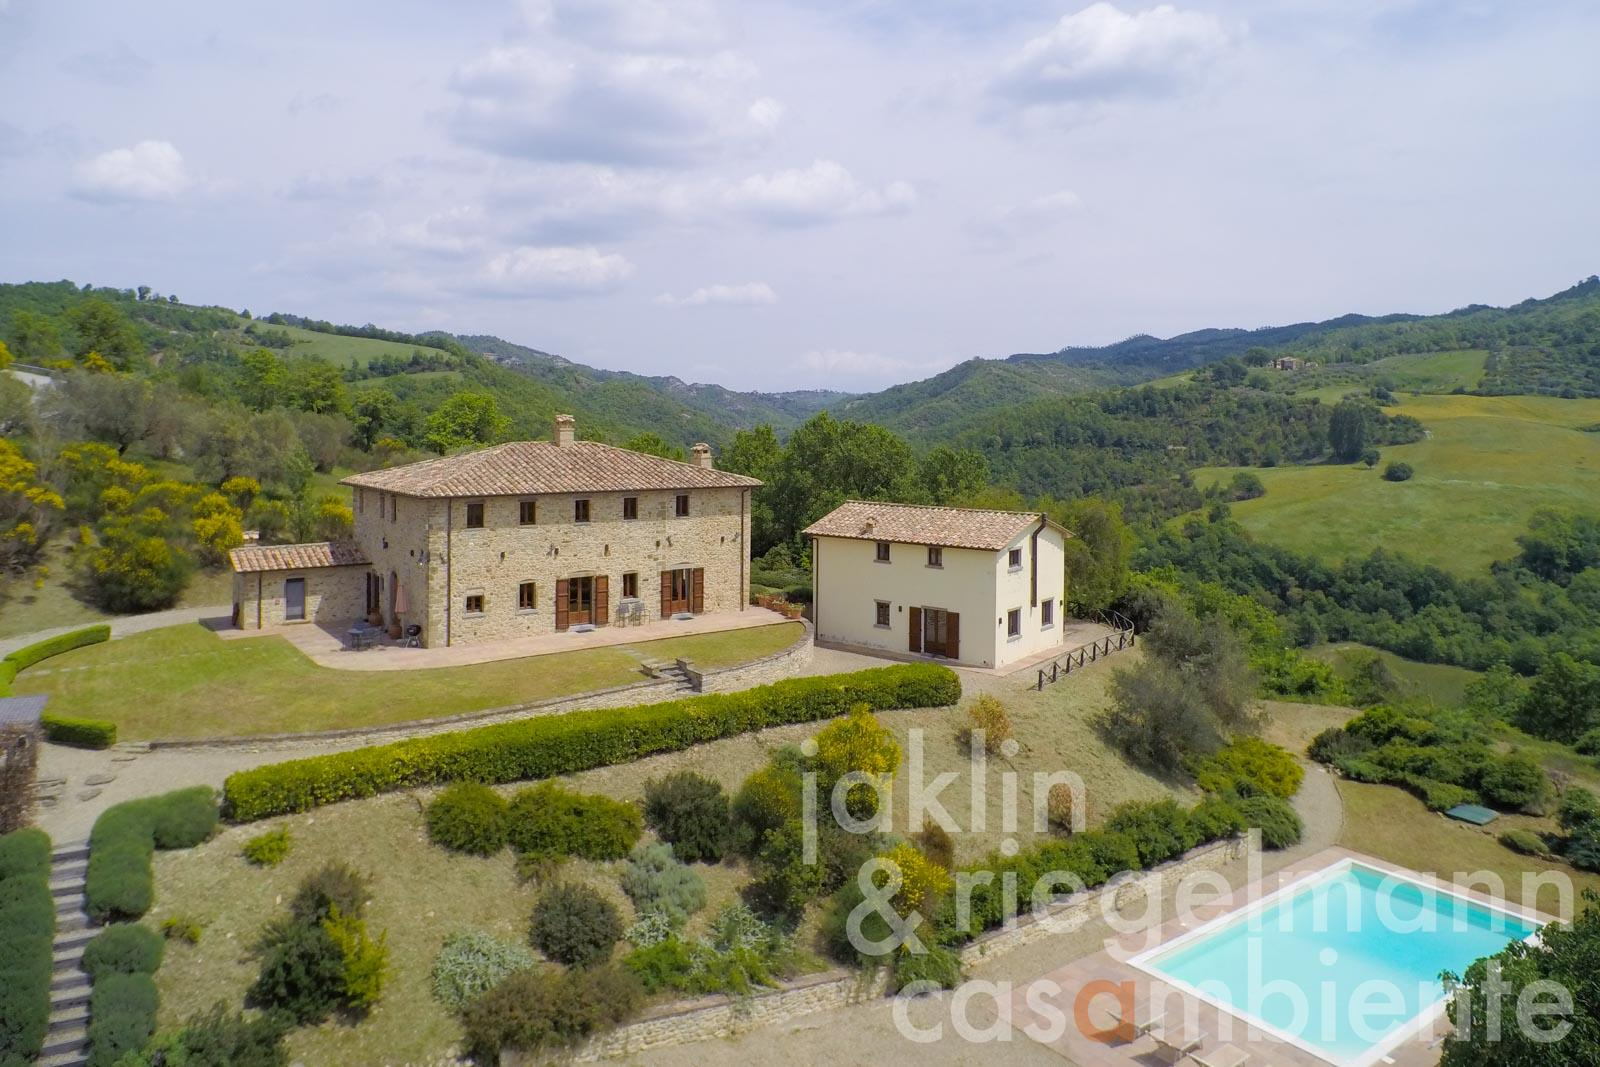 The magnificent house of natural stone for sale with outbuildings and pool in dominant panoramic position in Umbria